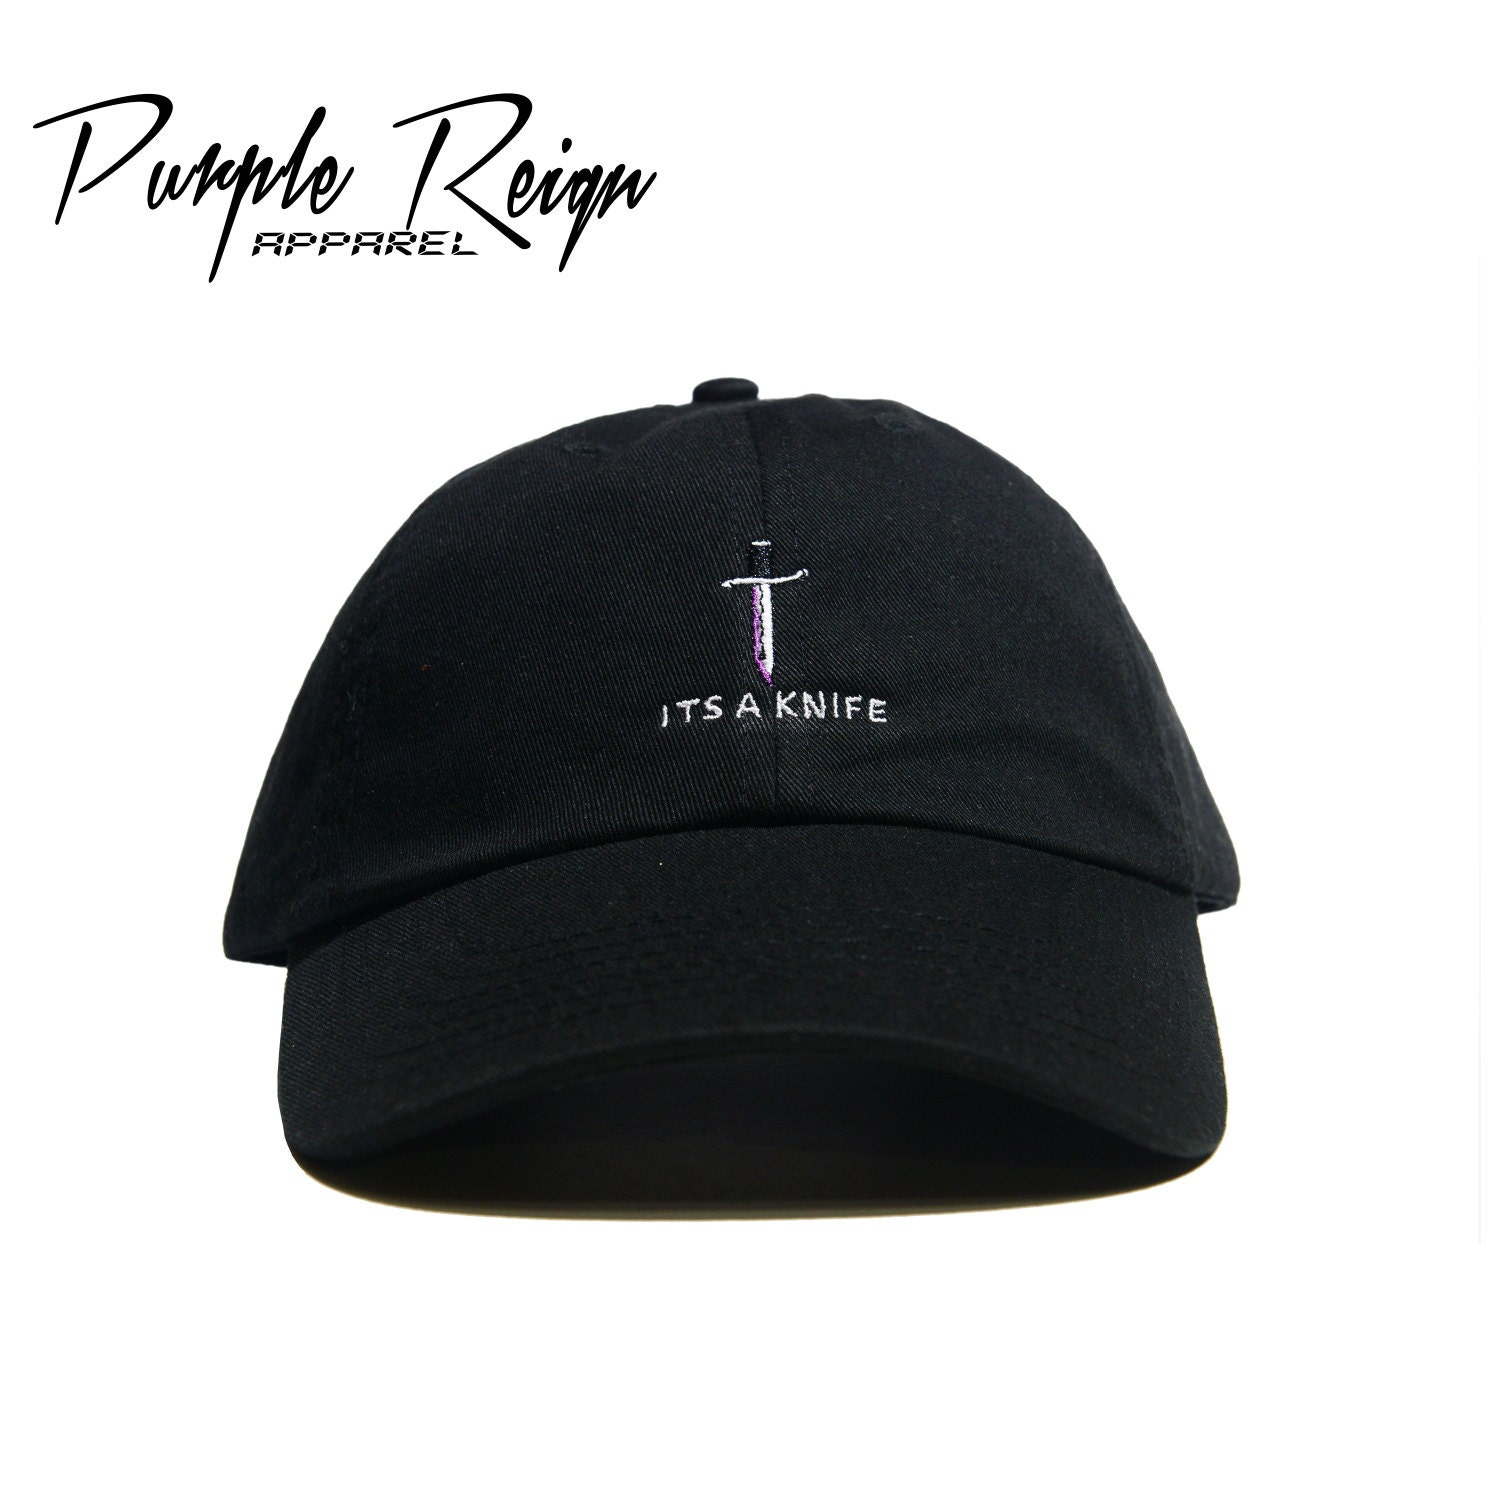 White baseball caps for crafts - Its A Knife Embroidered Dad Hat 21 Savage Bathing Ape Yeezy Ftp Gucci Mane